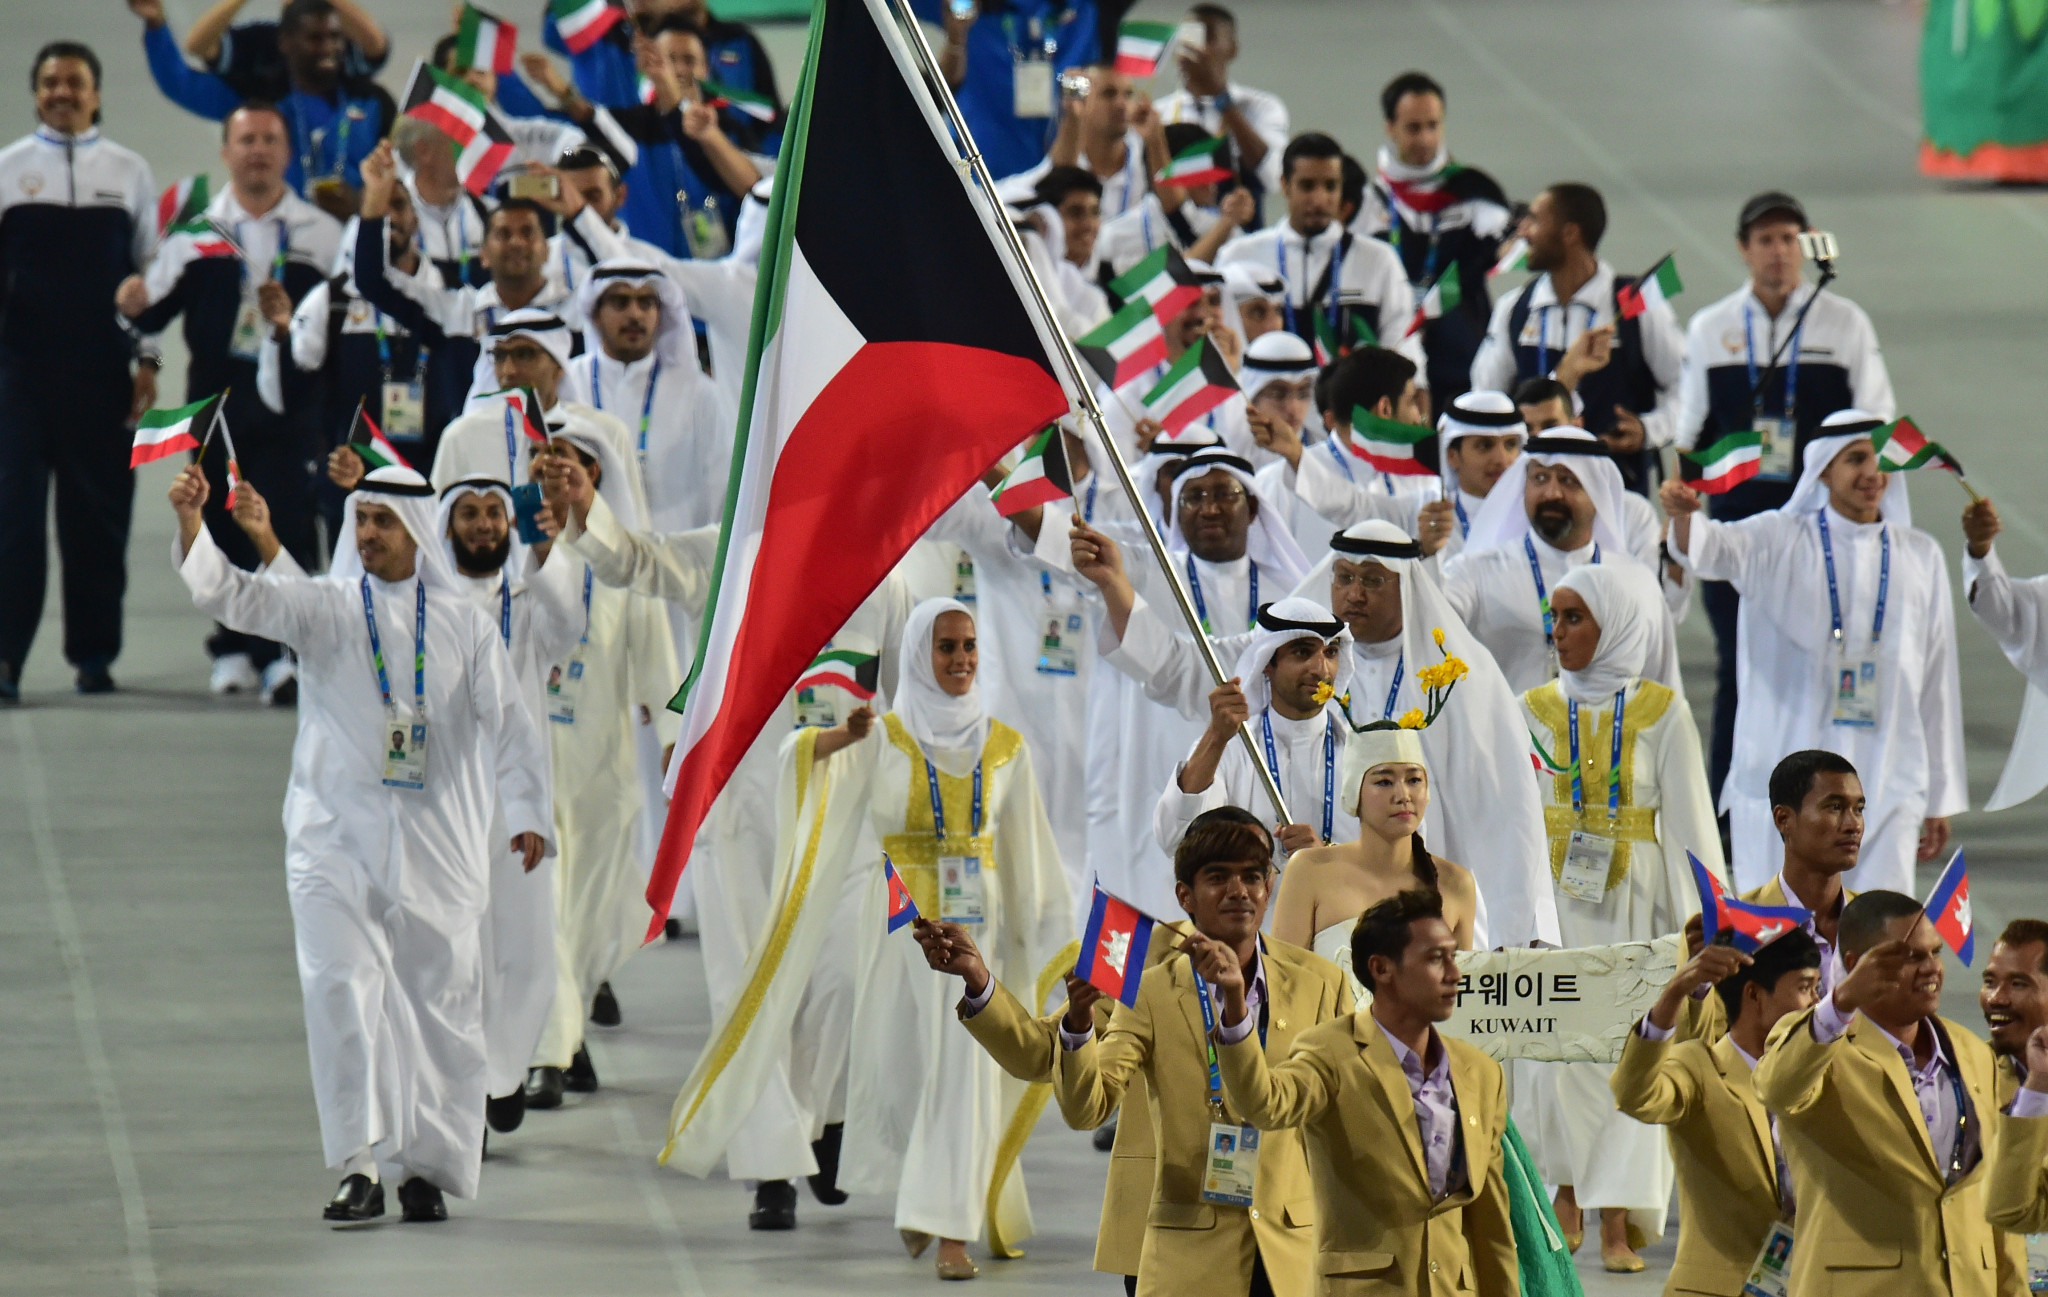 A ban on Kuwait has been lifted by the International Olympic Committee, allowing them to compete under their own flag at the Asian Games ©Getty Images